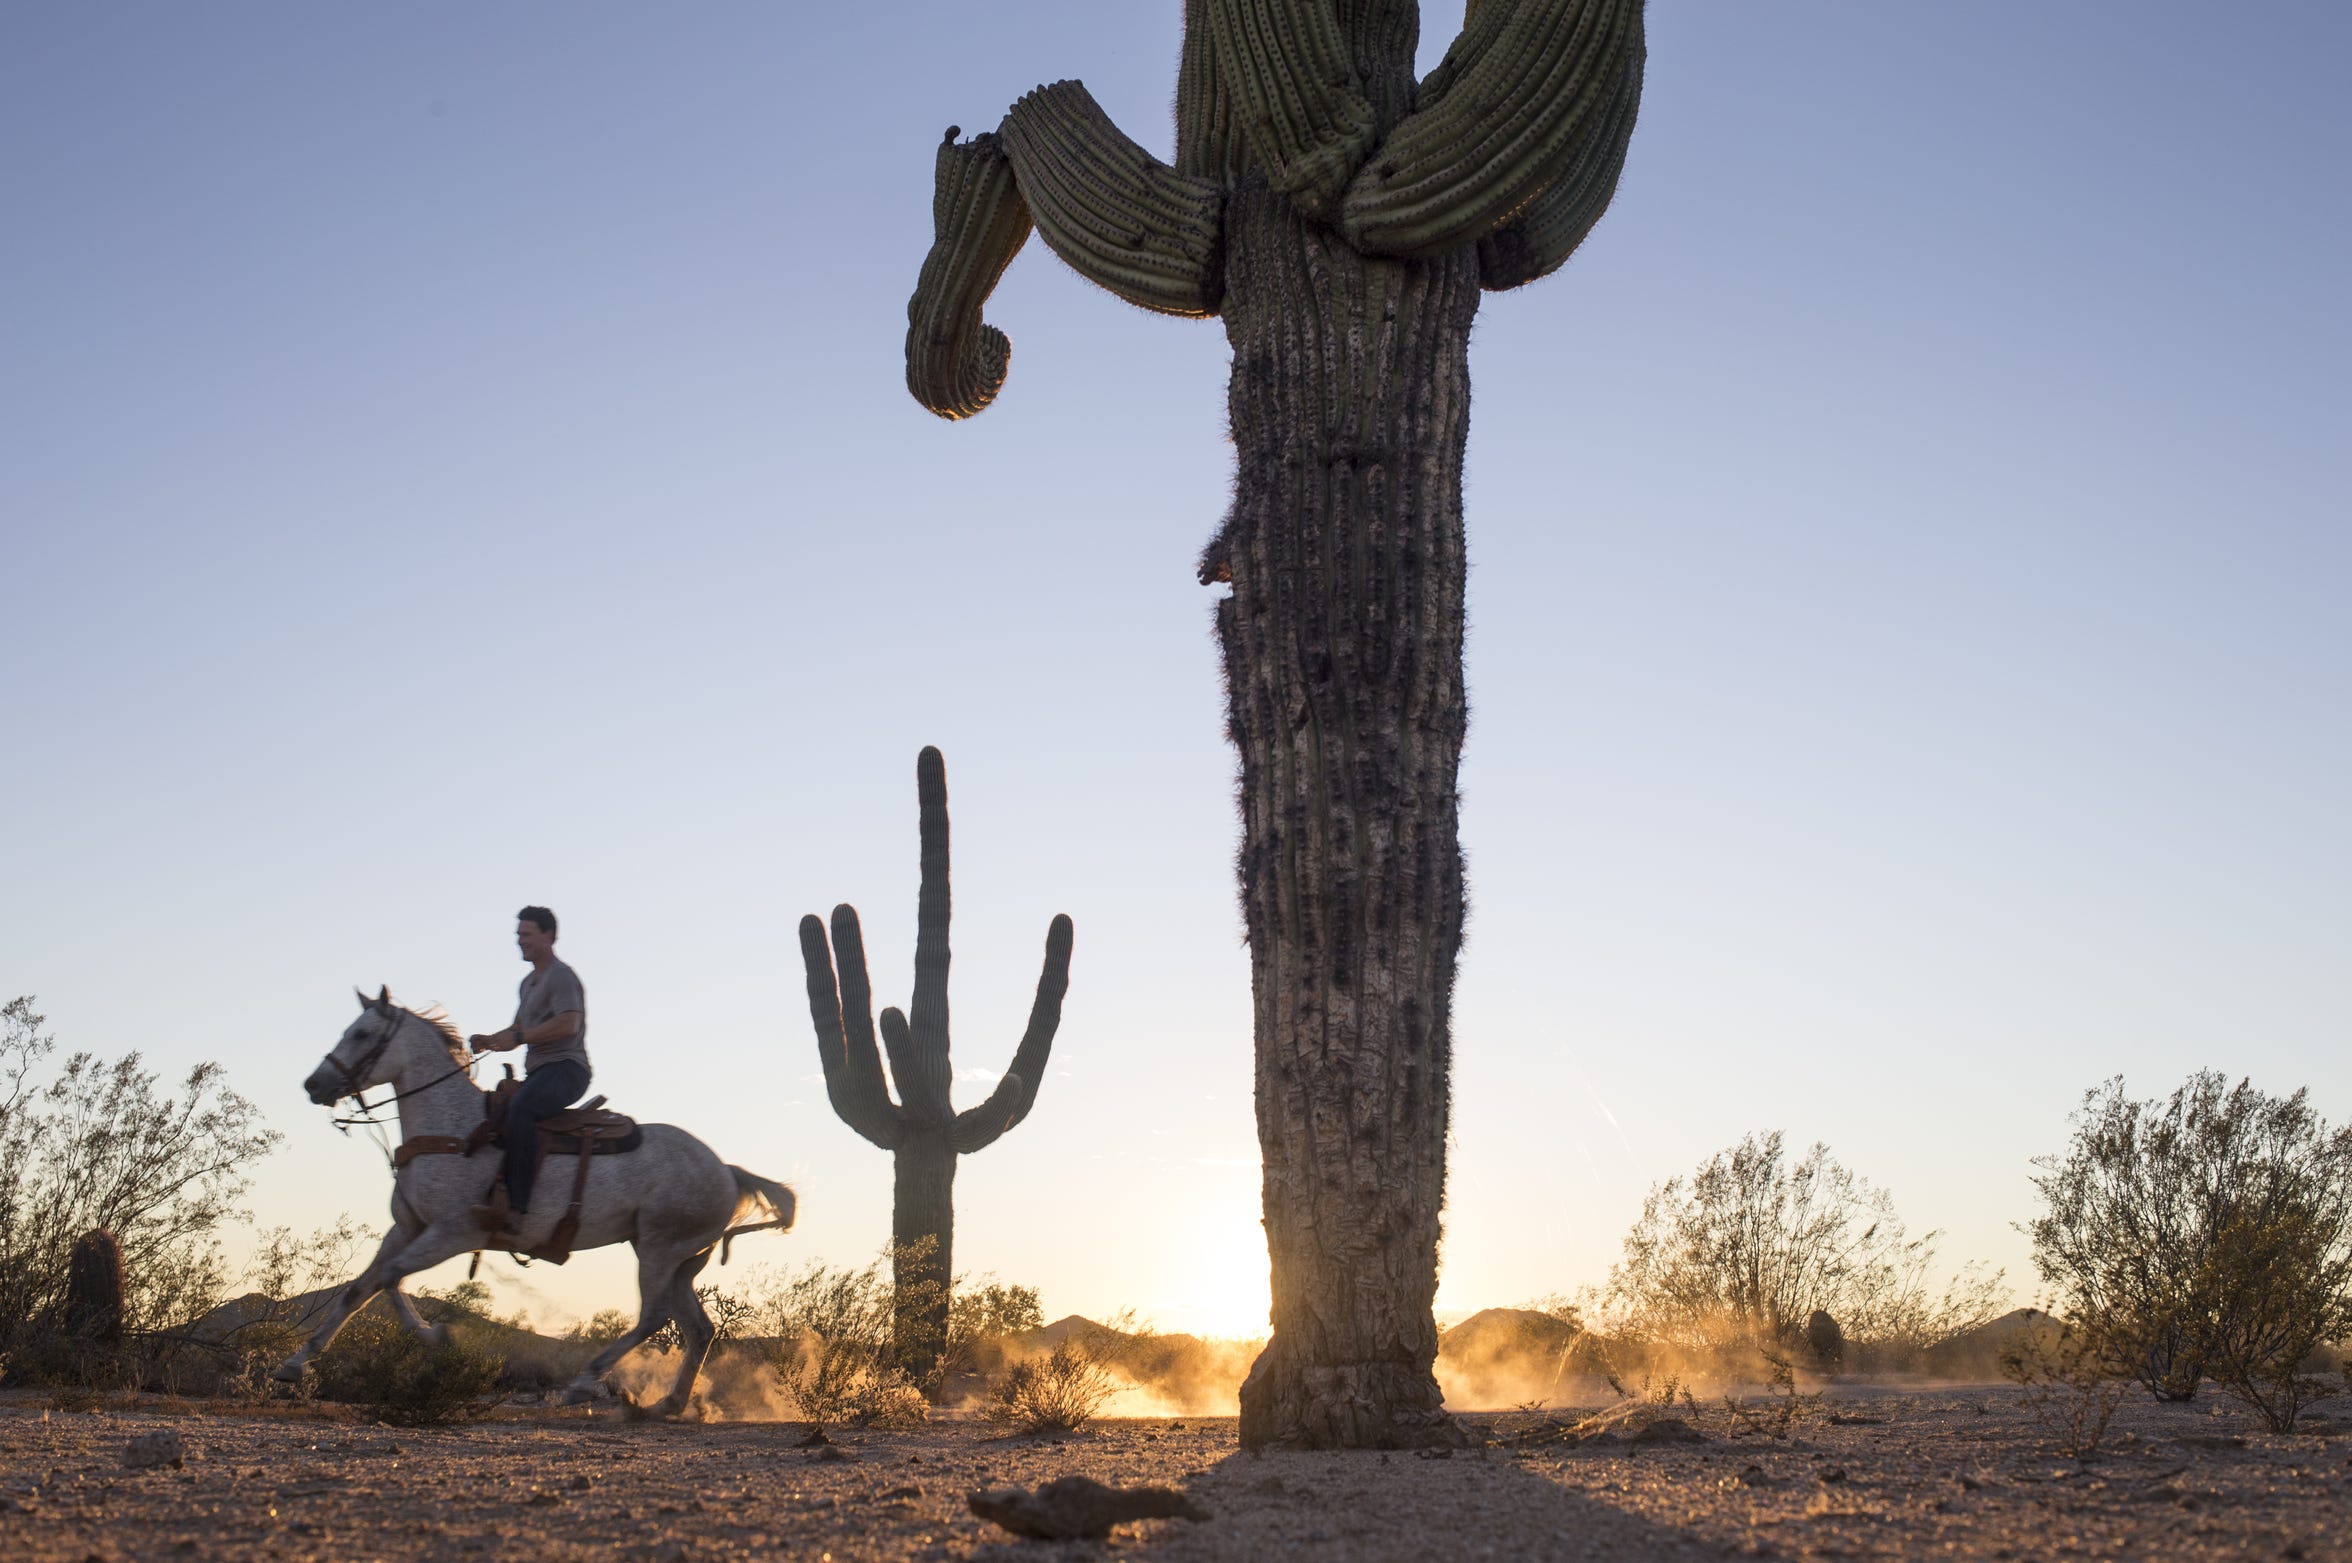 Shane Doan rides his horse, RJ, in the desert near his private Cave Creek ranch Ice Barns in 2016.